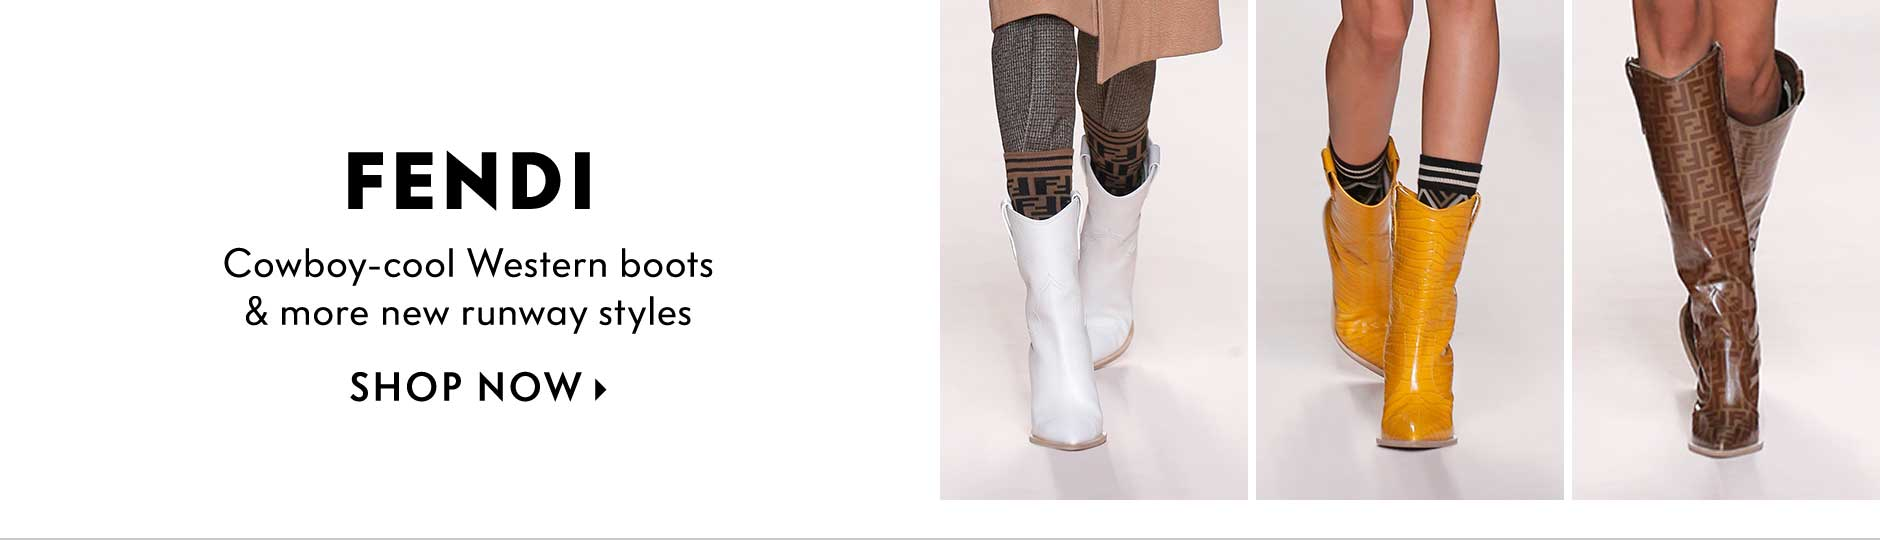 Fendi - Cowboy-cool Western boots & more new runway styles